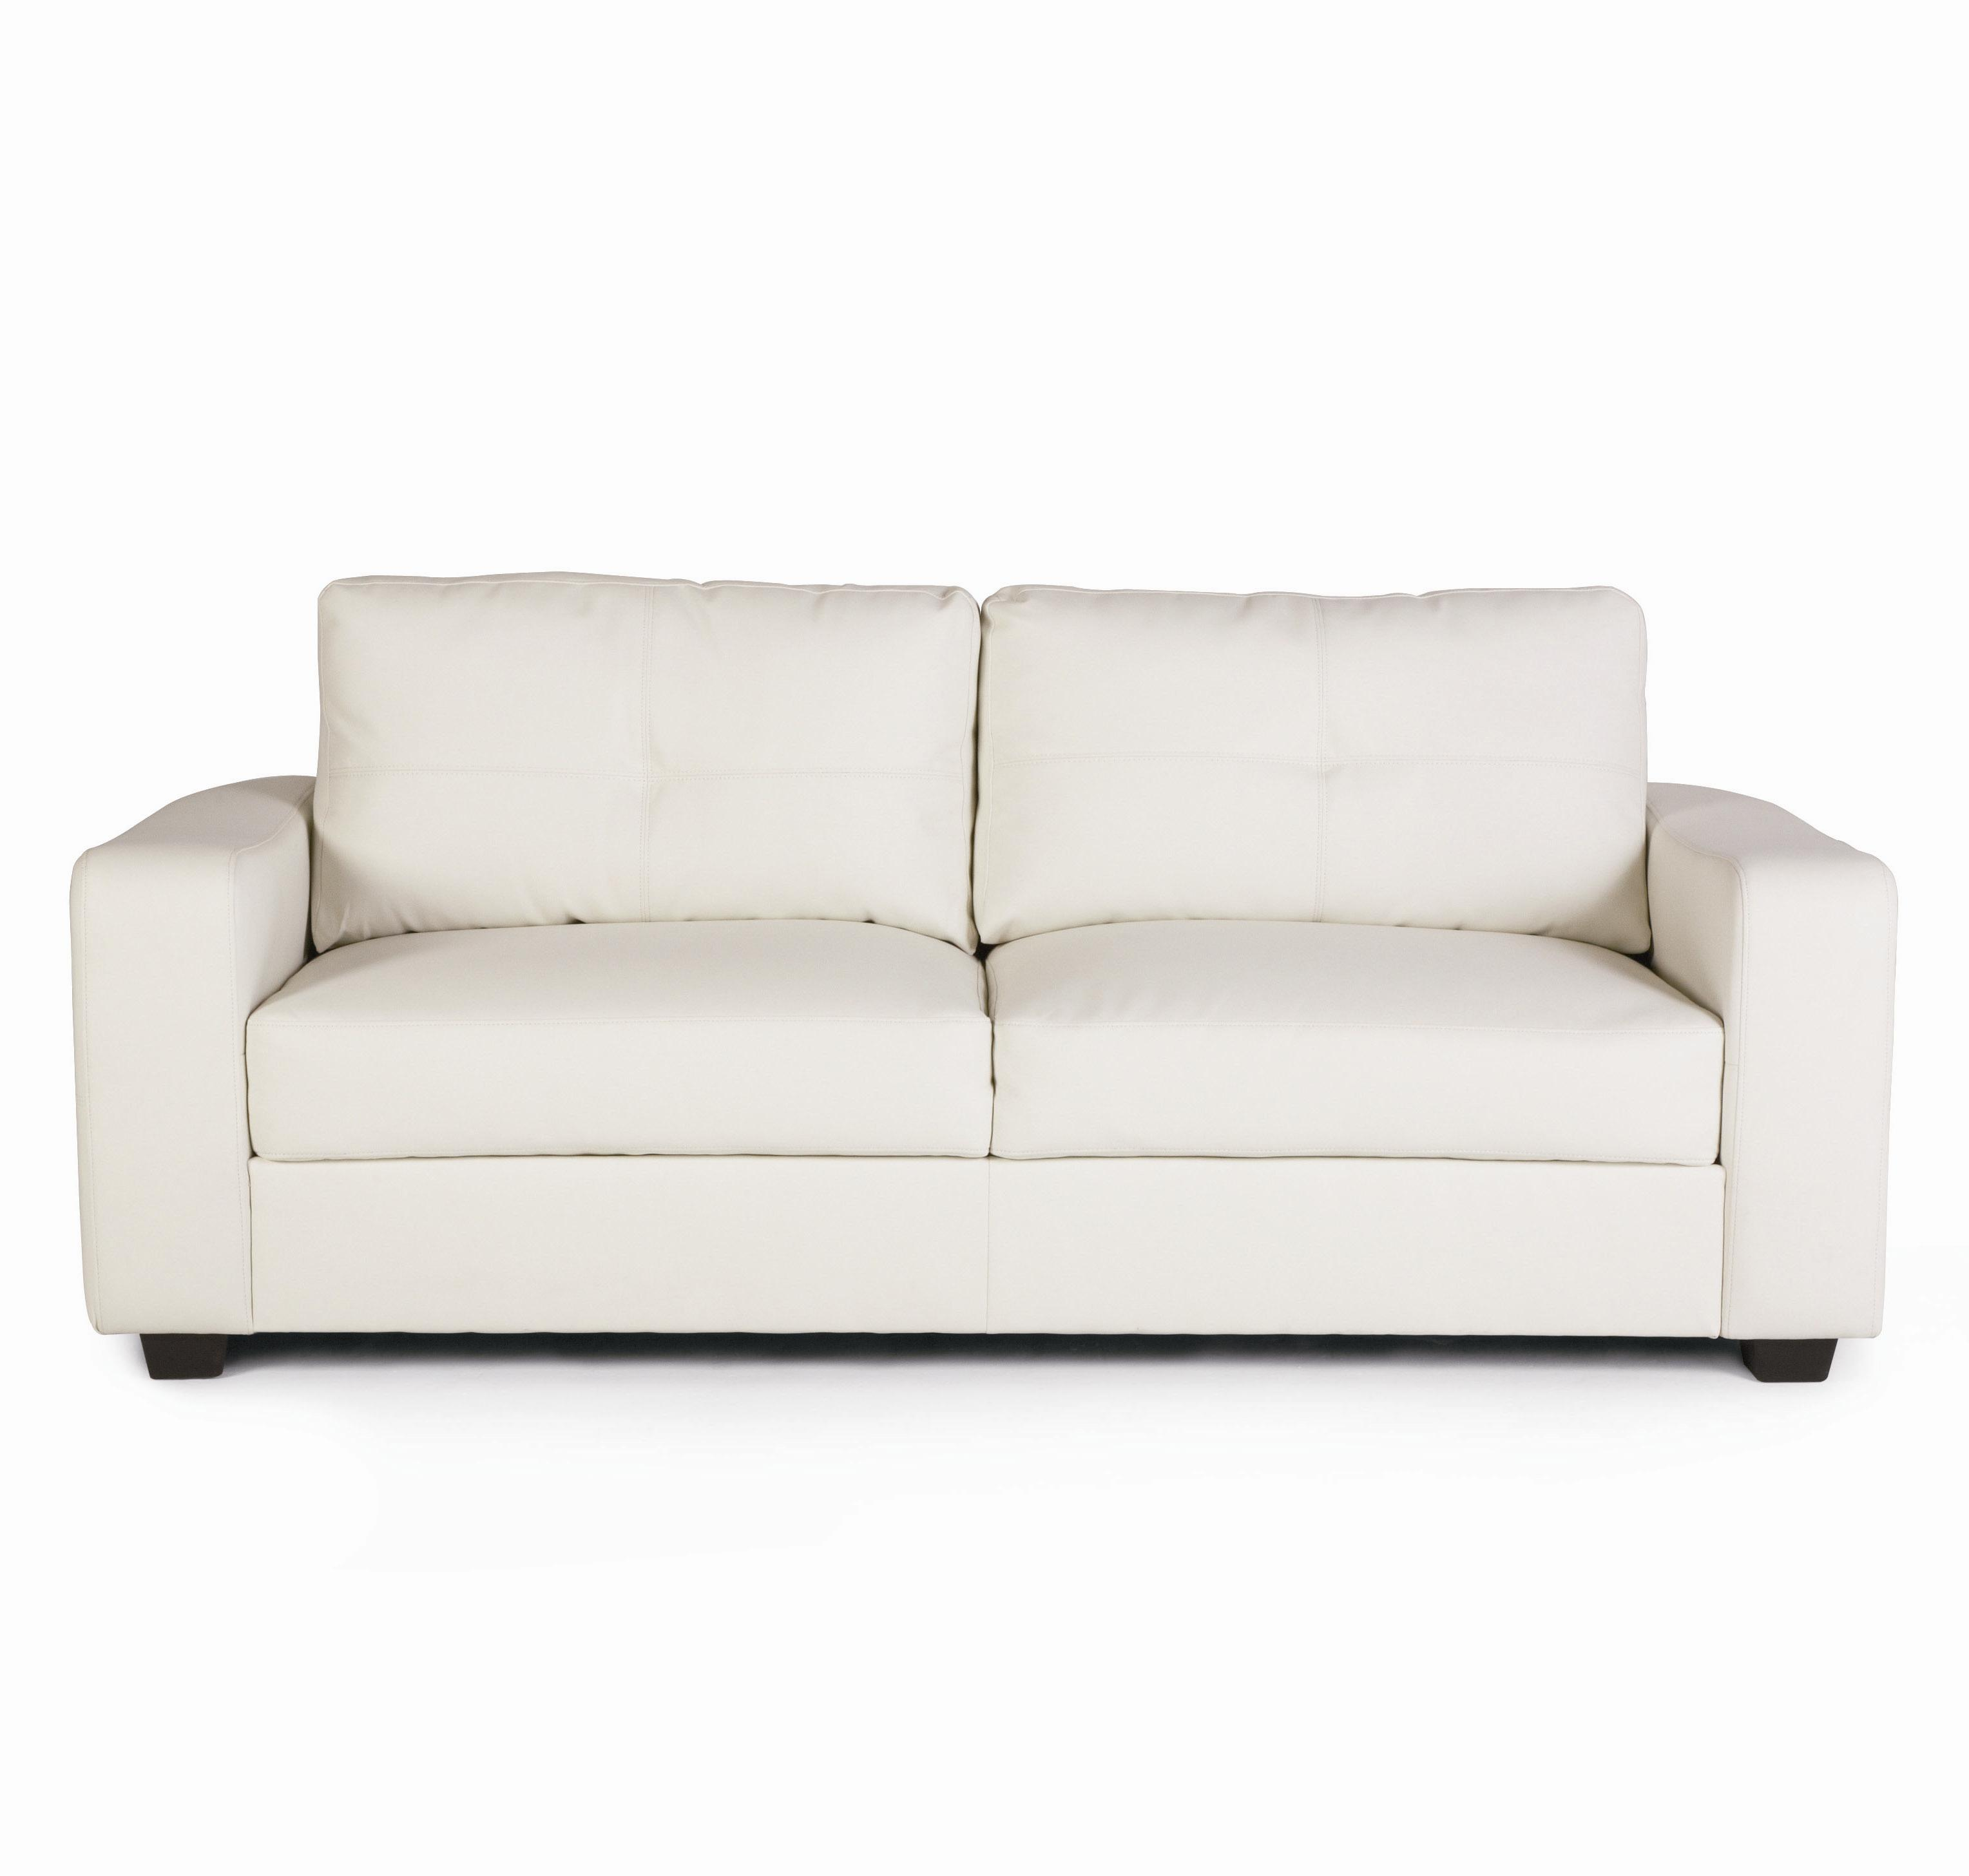 white leather sectional sofa with ottoman recliner online india petition edward luvs